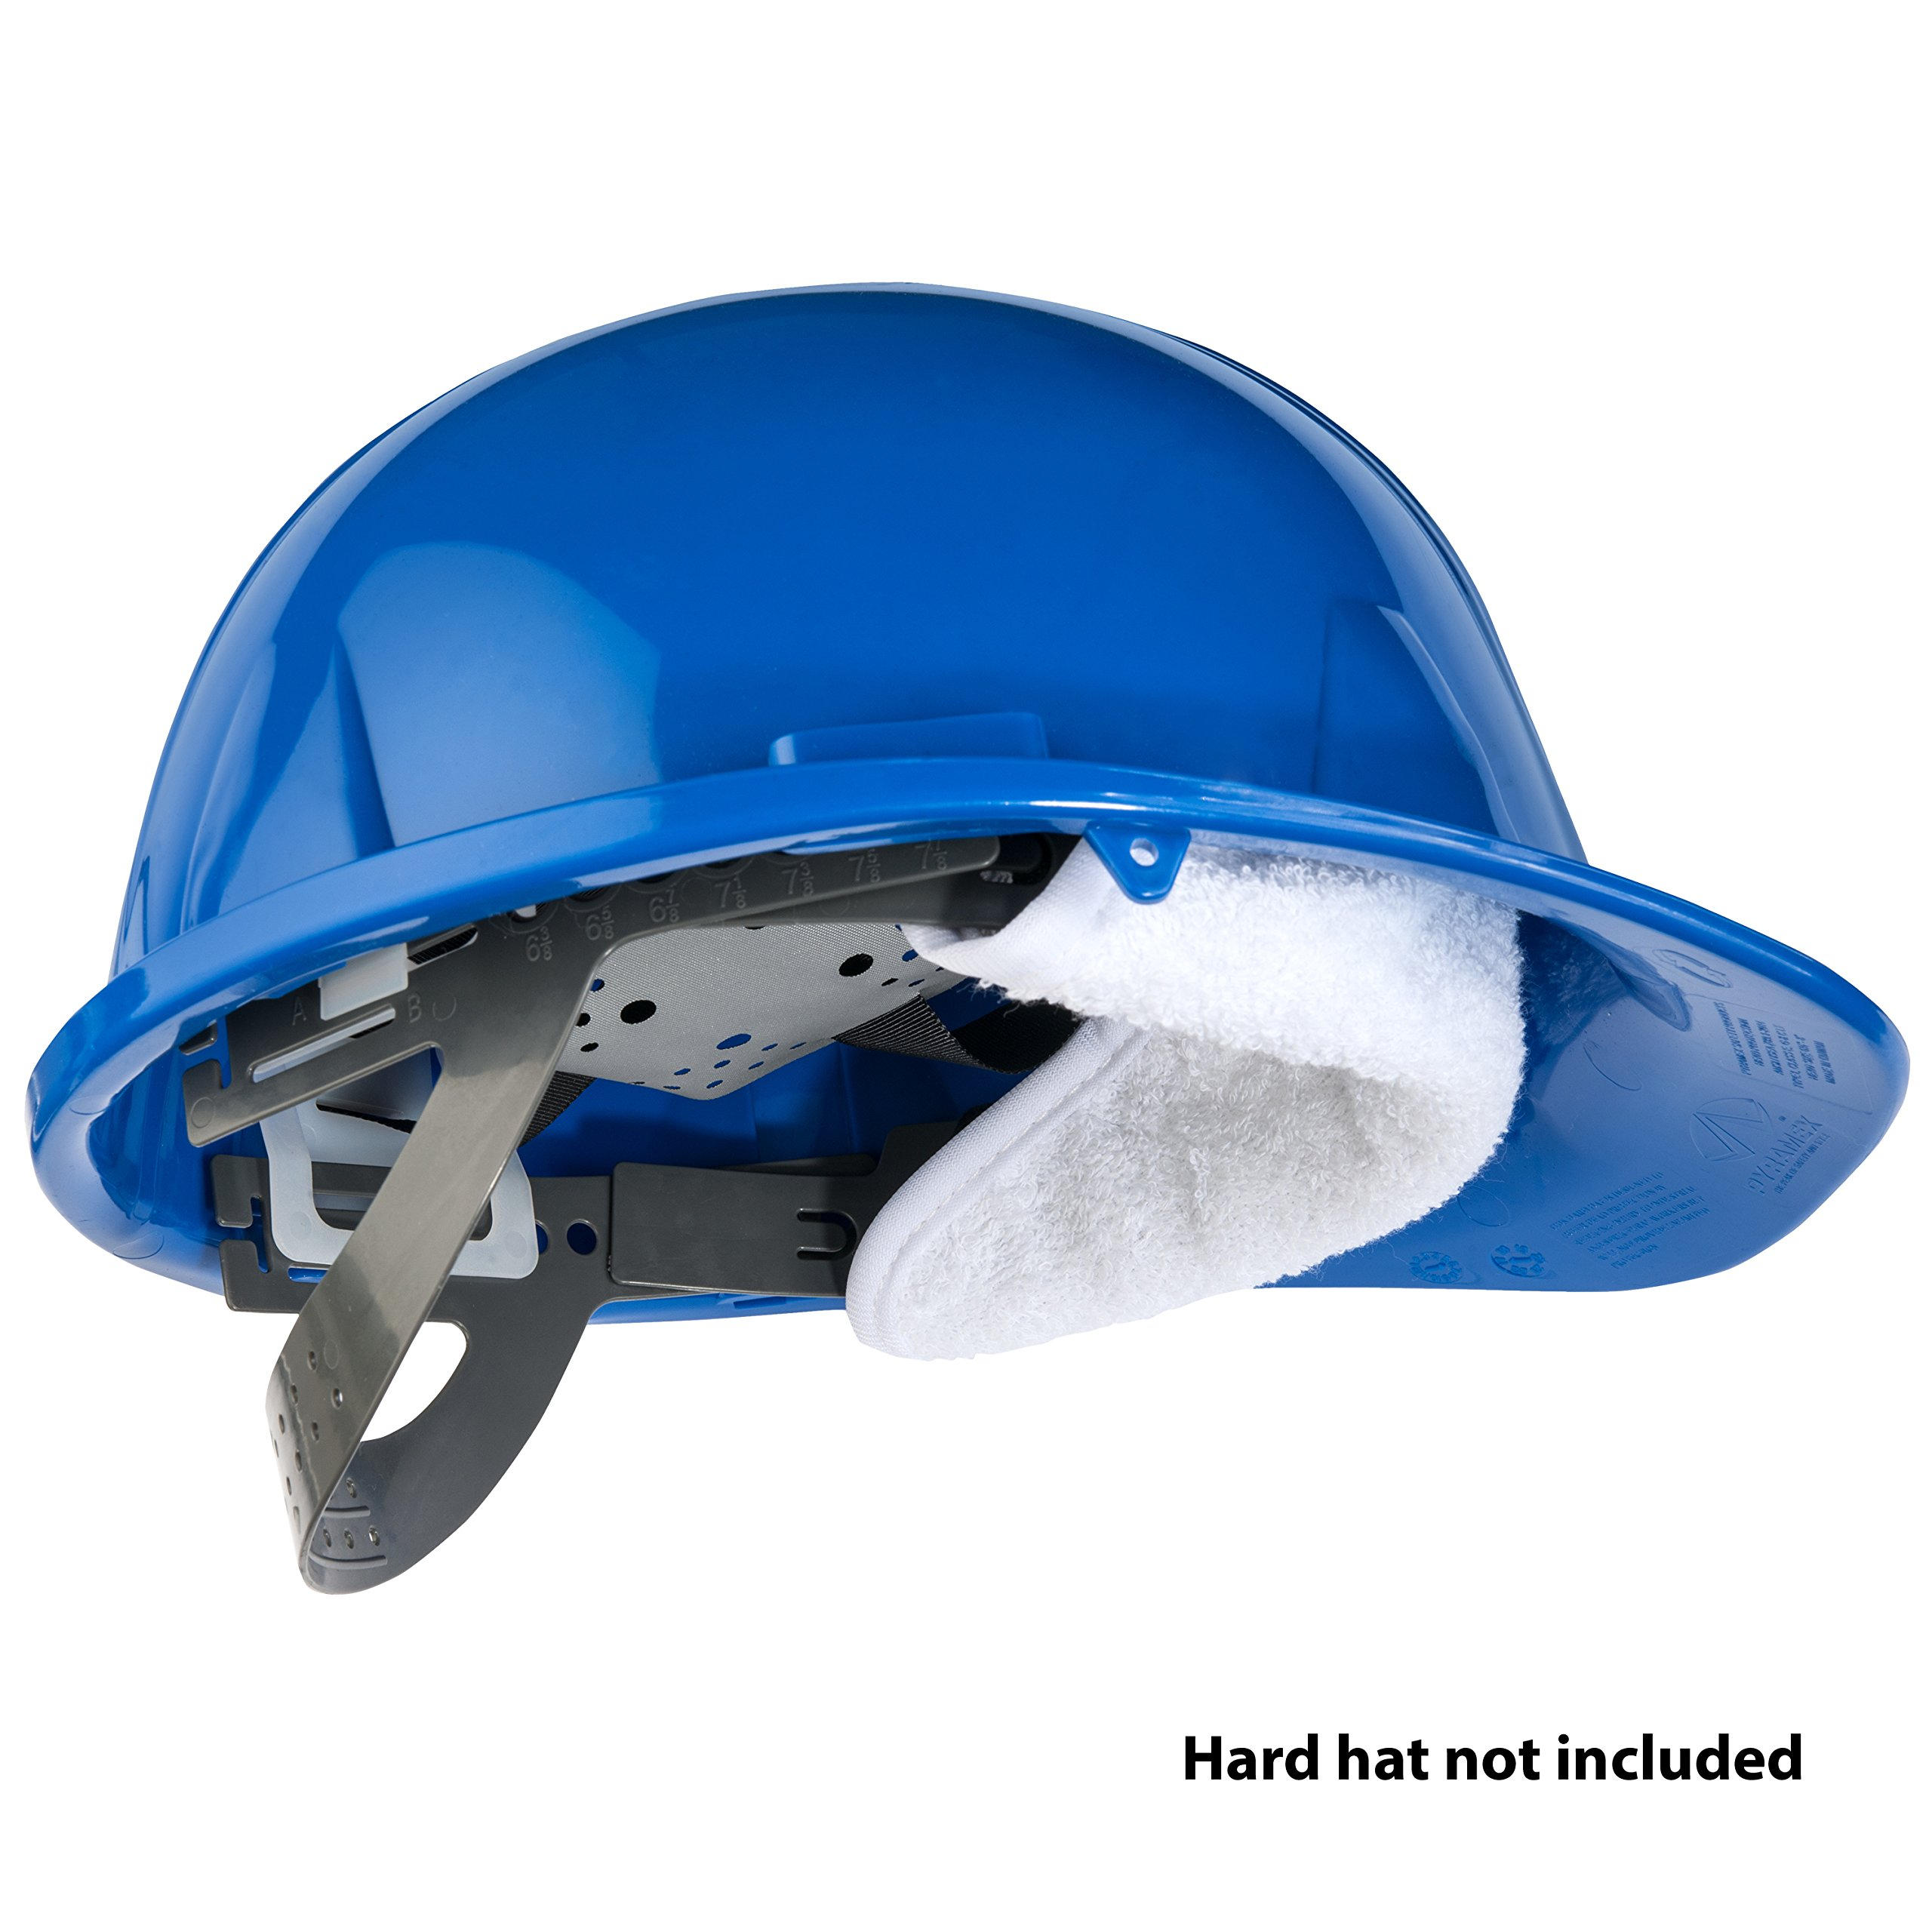 THREE Cotton Sweatbands for hard hats SOFT COTTON - EASY VELCRO ATTACHMENT - BEST VALUE - WASHABLE AND ESPECIALLY EASY TO ATTACH TO HARD HATS. by Paulex Solutions (Image #6)